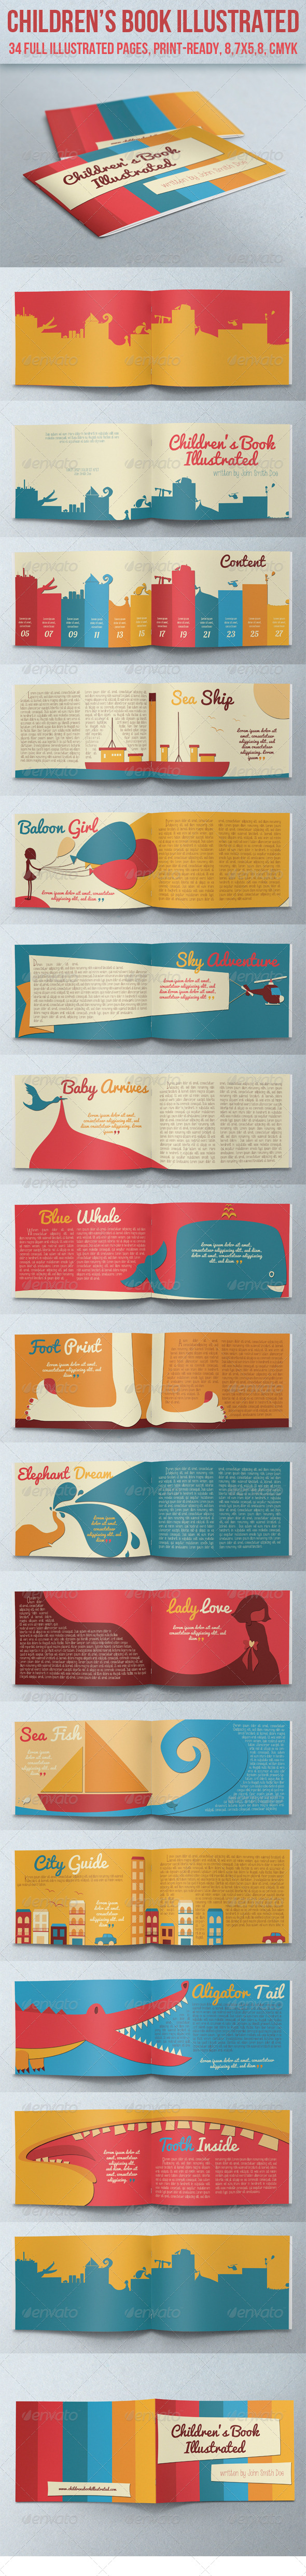 GraphicRiver Children s Book Illustrated 5318893